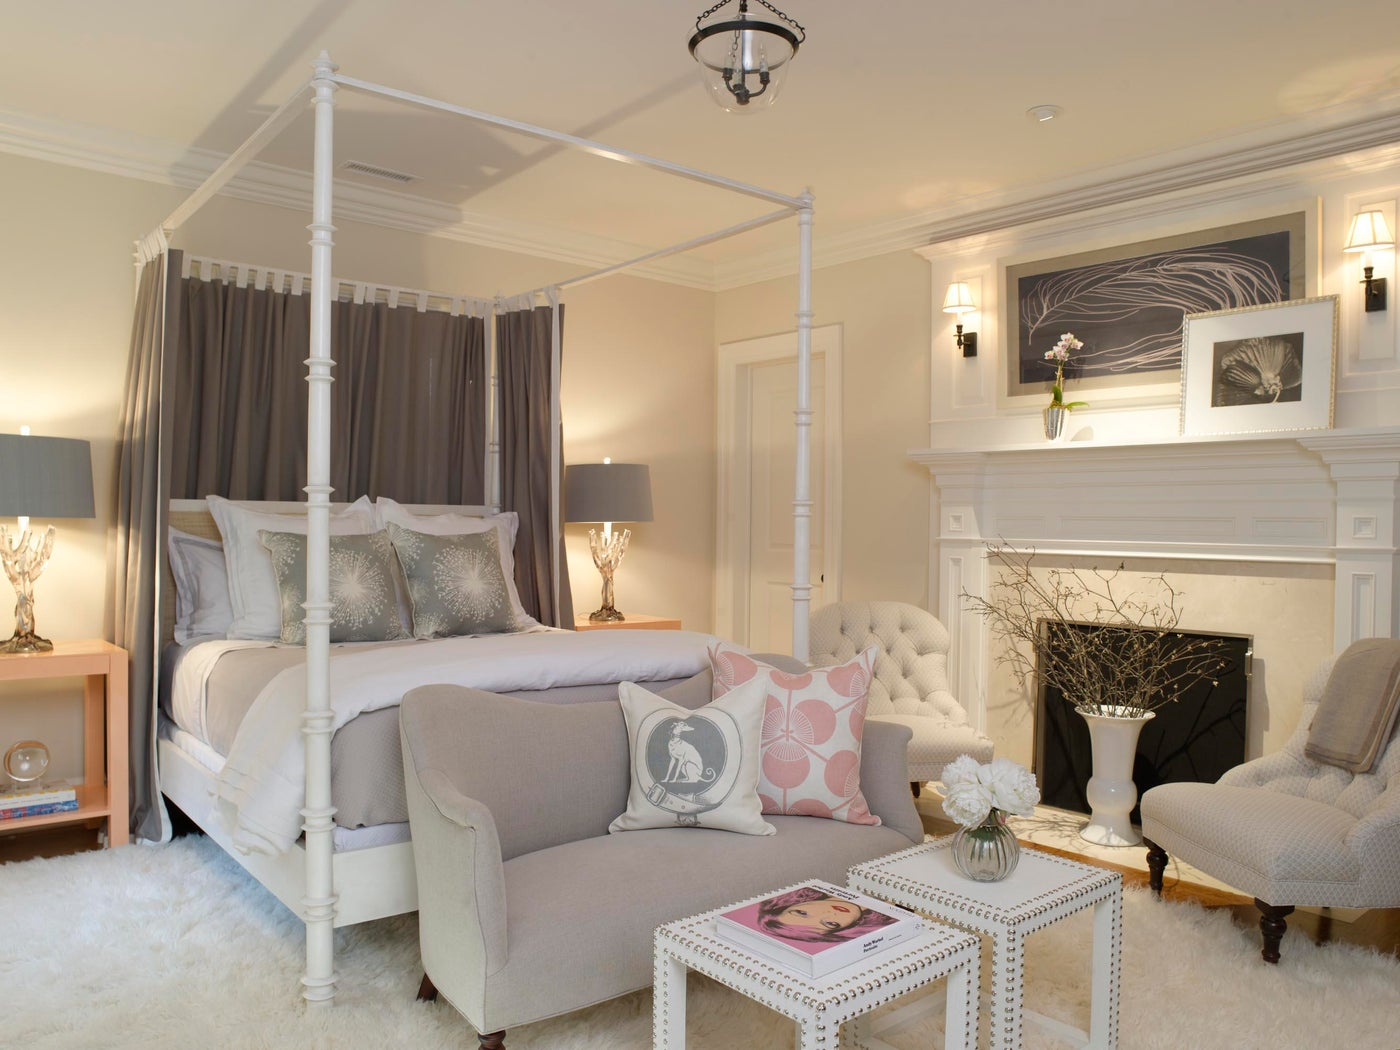 White and Grey Guest Bedroom with Canopy Bed and Fireplace